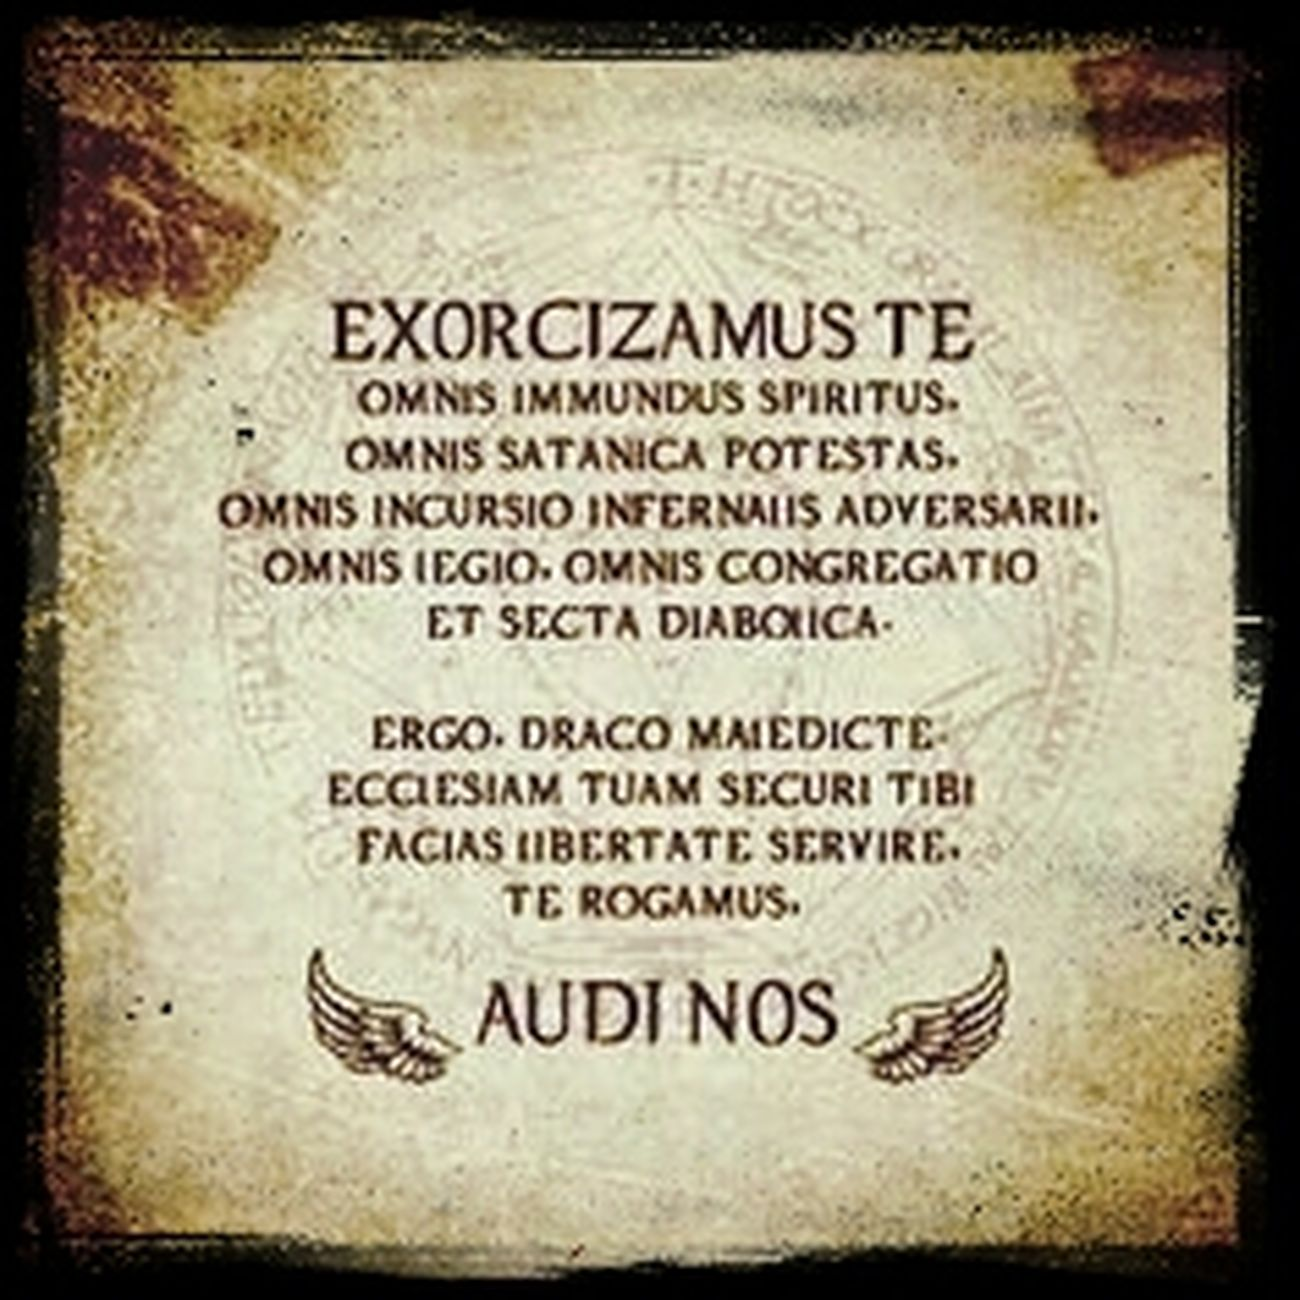 Sometimes all you need is a Supernatural help. ... Exorcizamus Te